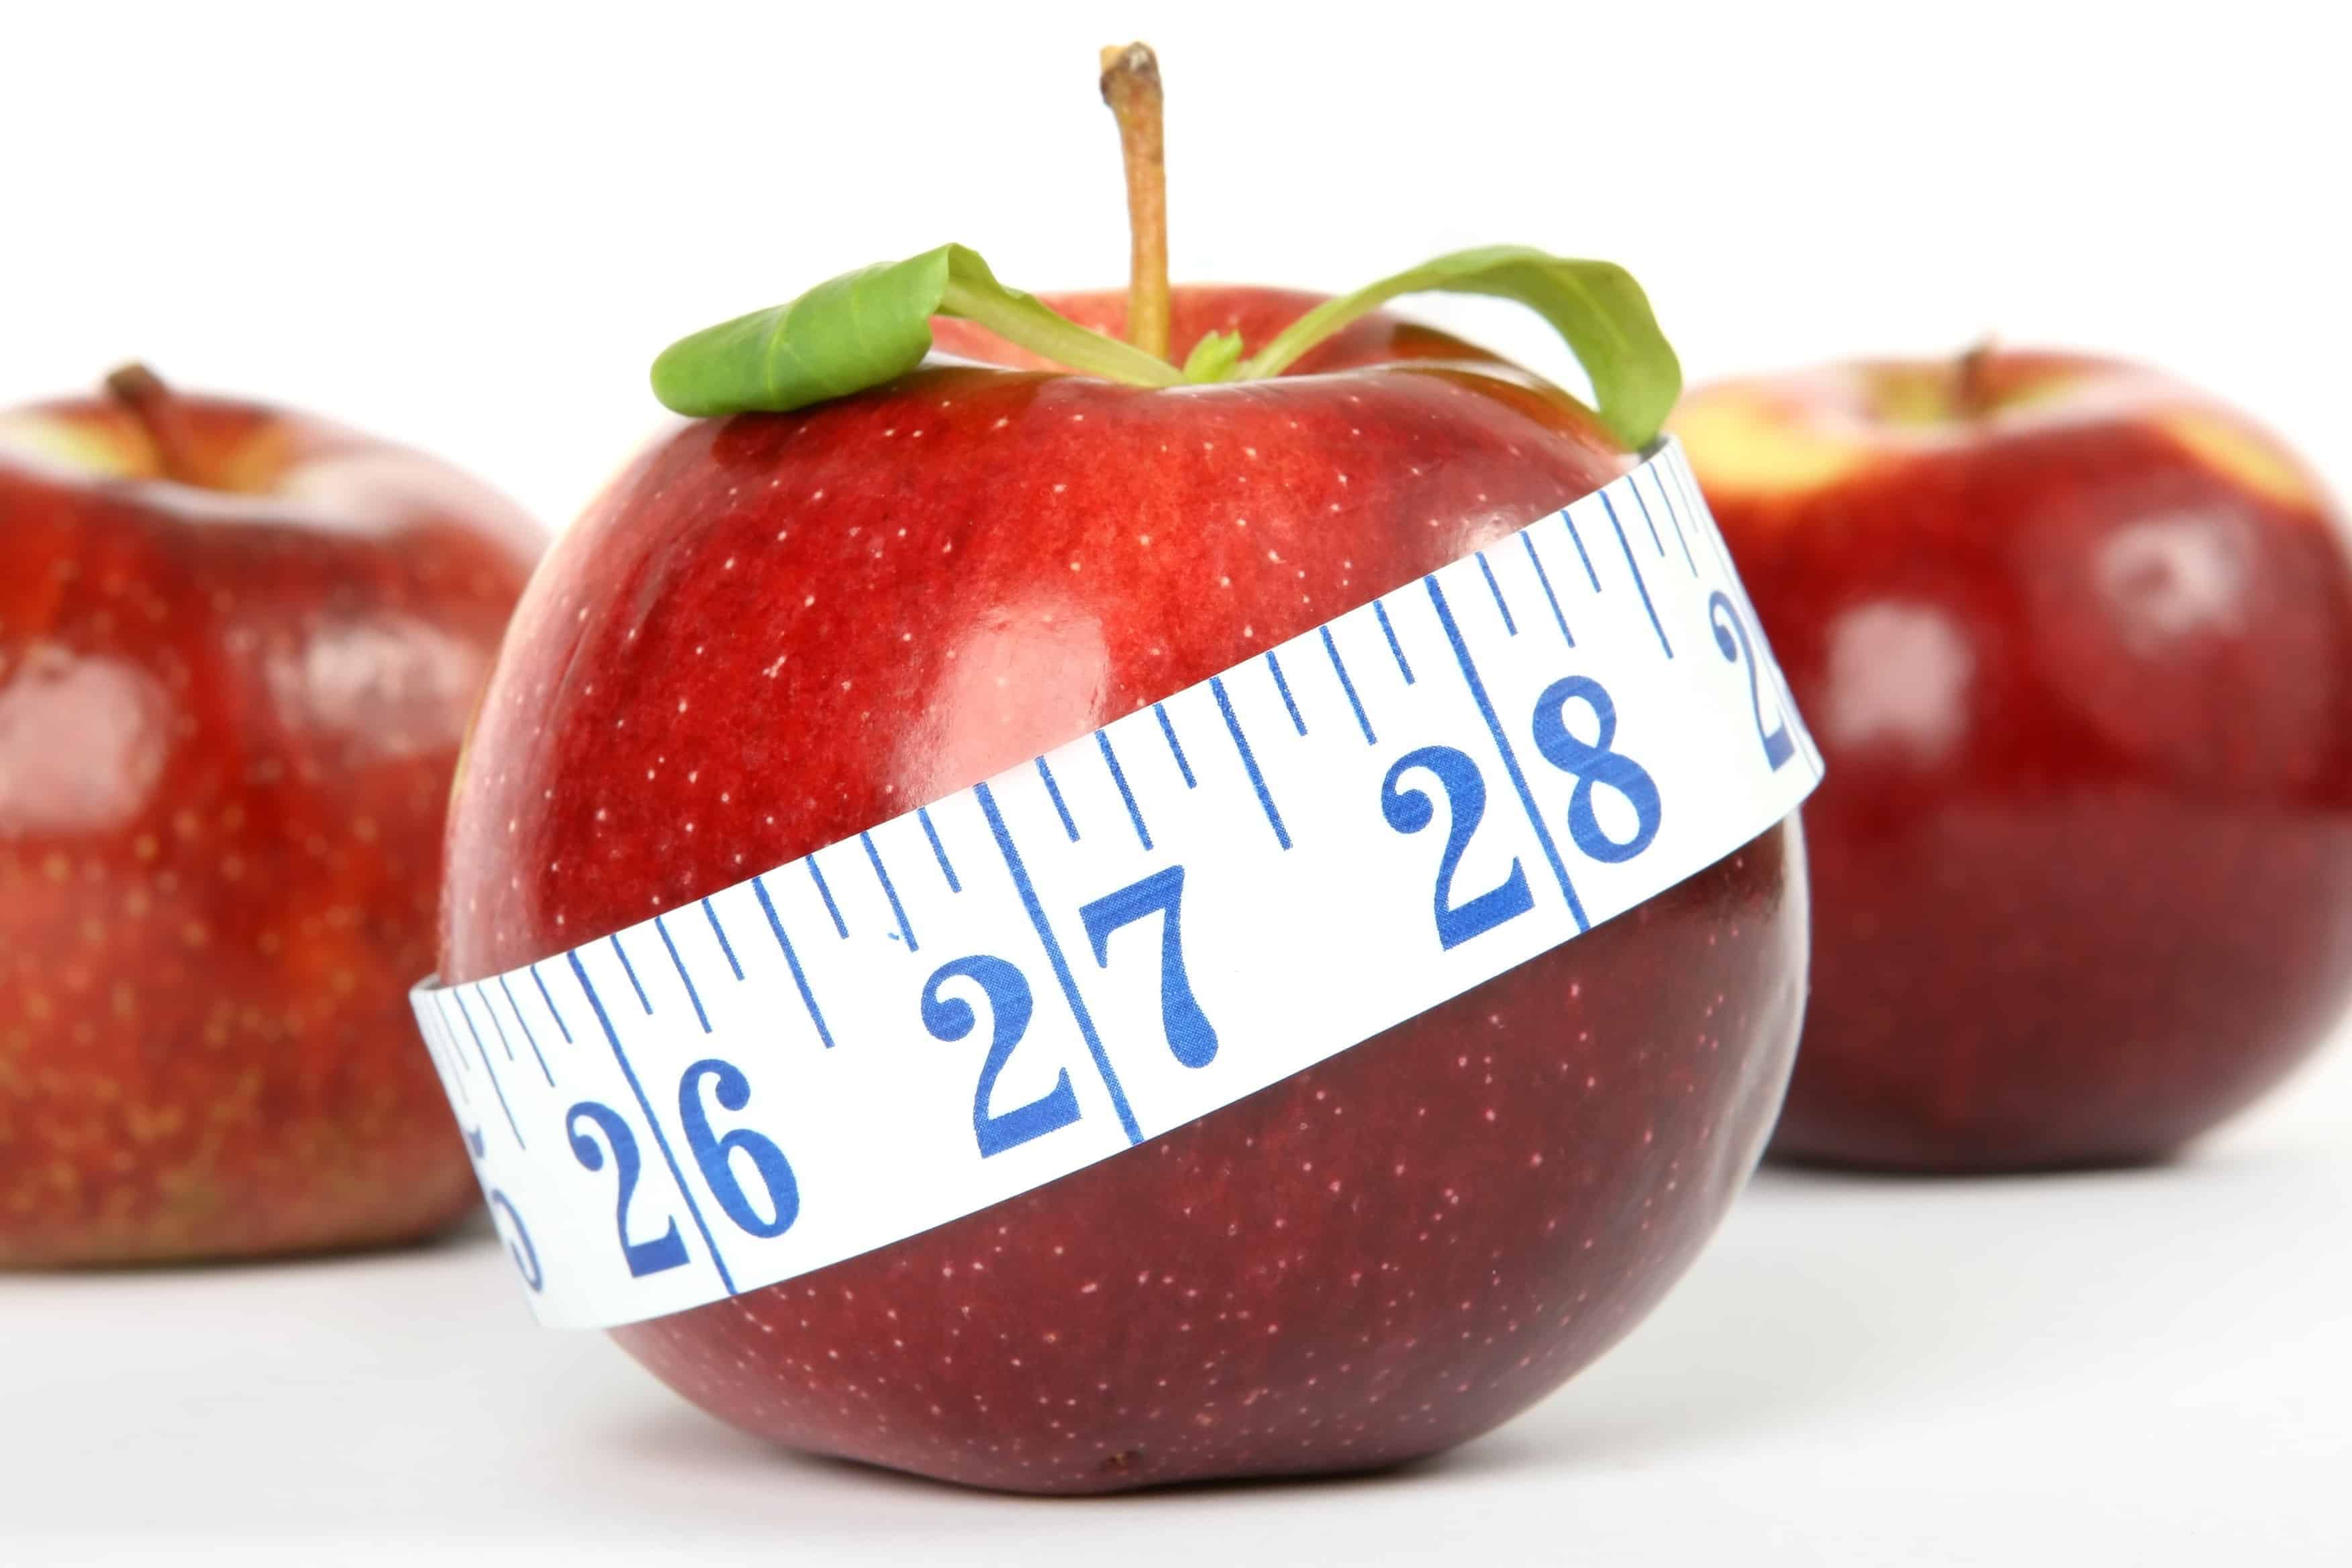 Apples - apple with tape measurer